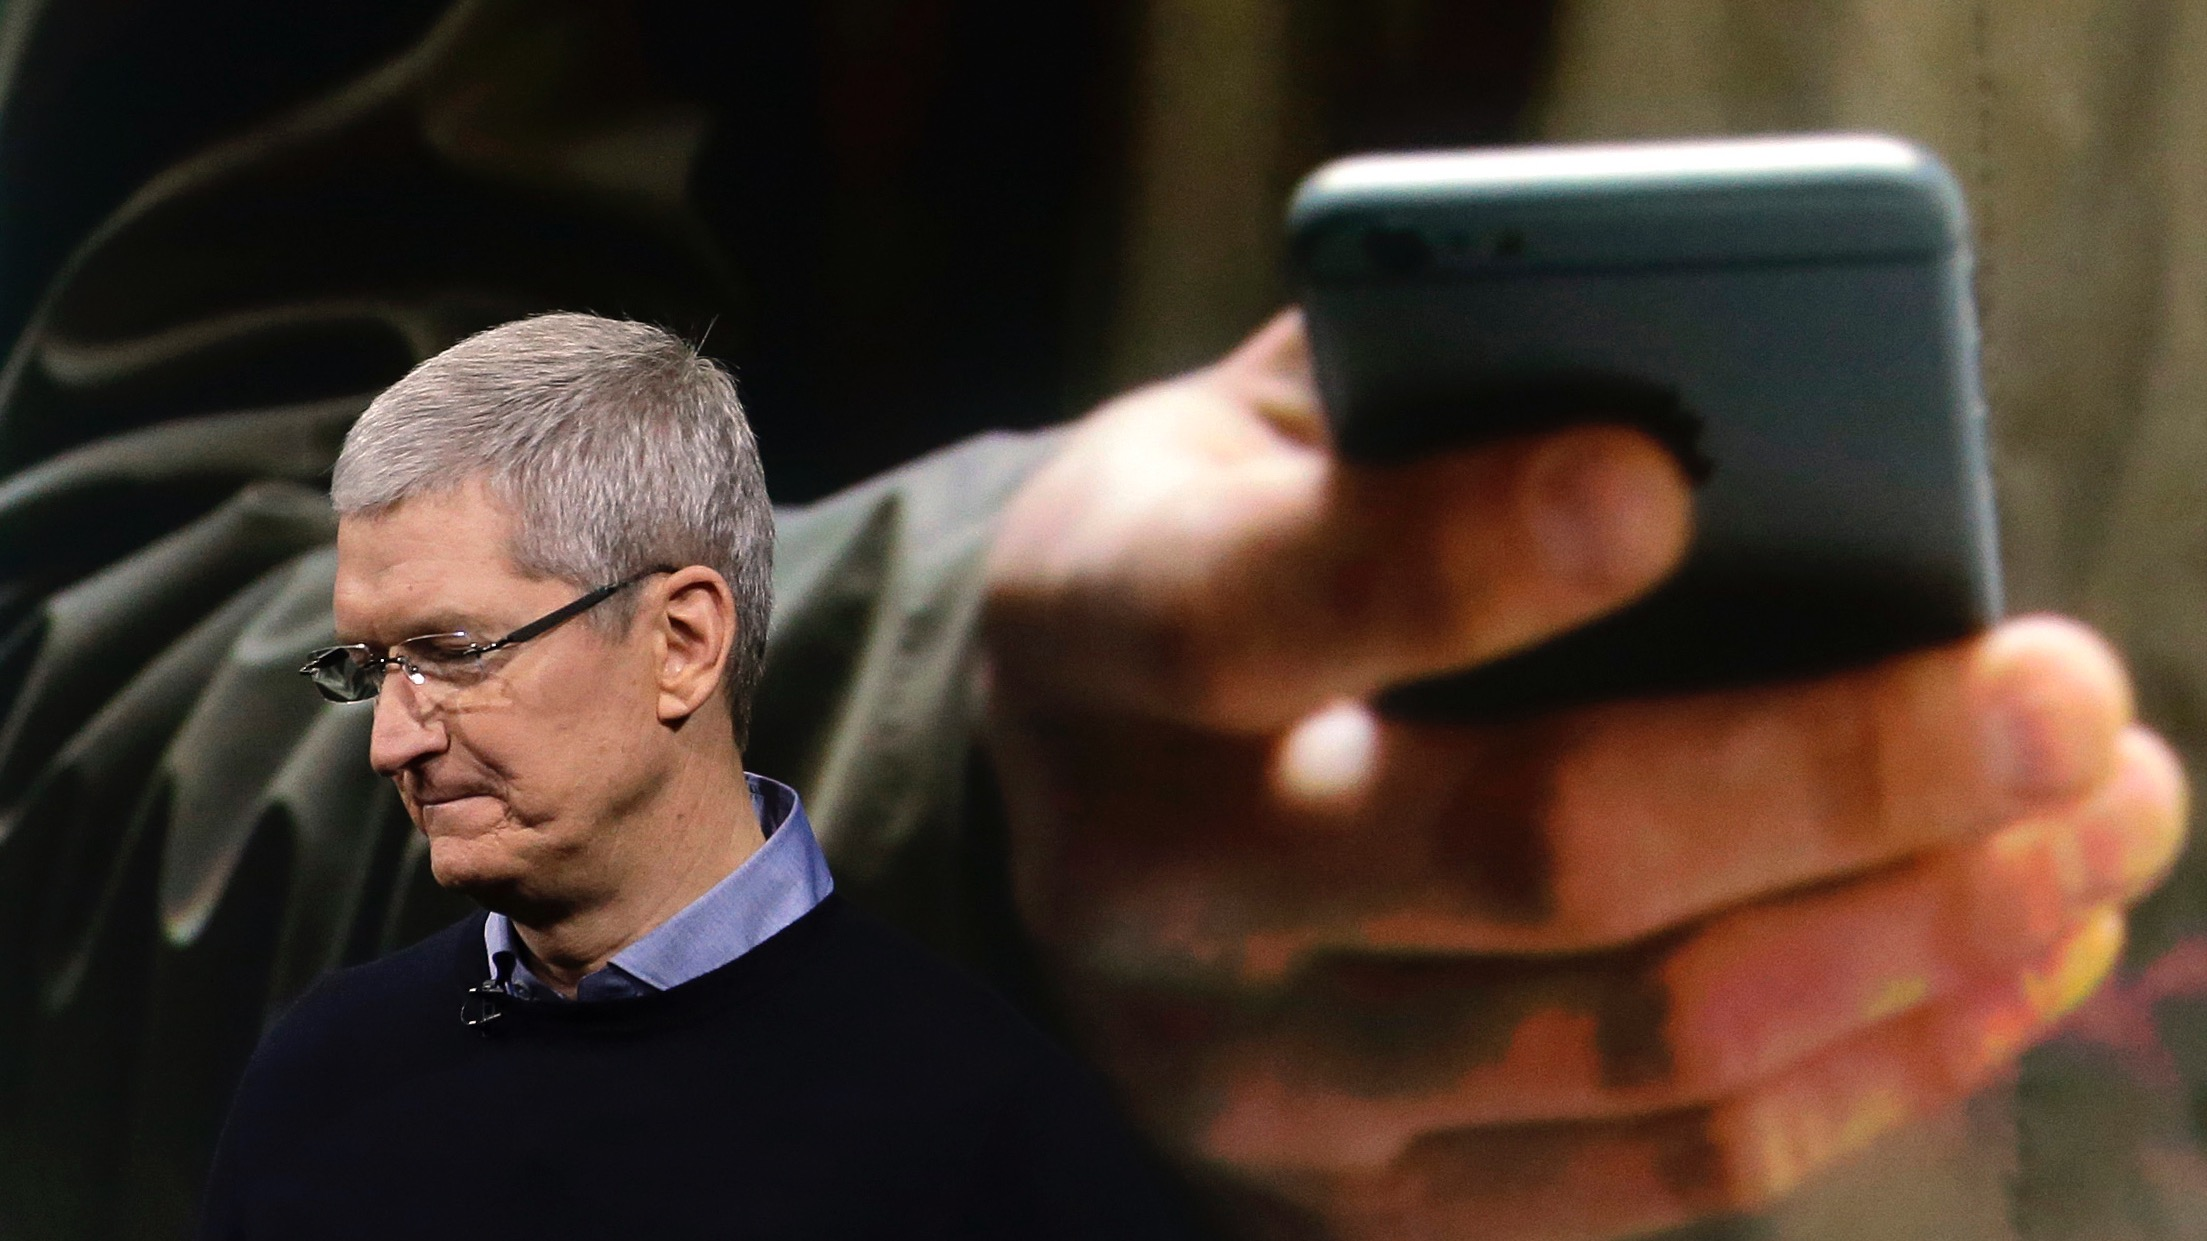 In this March 21, 2016 photo, Apple CEO Tim Cook speaks at an event to announce new products at Apple headquarters in Cupertino, Calif.  Companies like Apple and Microsoft pushing back against the surveillance state in the courts, arguing that federal authorities have overstepped their legal authority to obtain your chats, email and other crucial information from phones and online services.(AP Photo/Marcio Jose Sanchez)